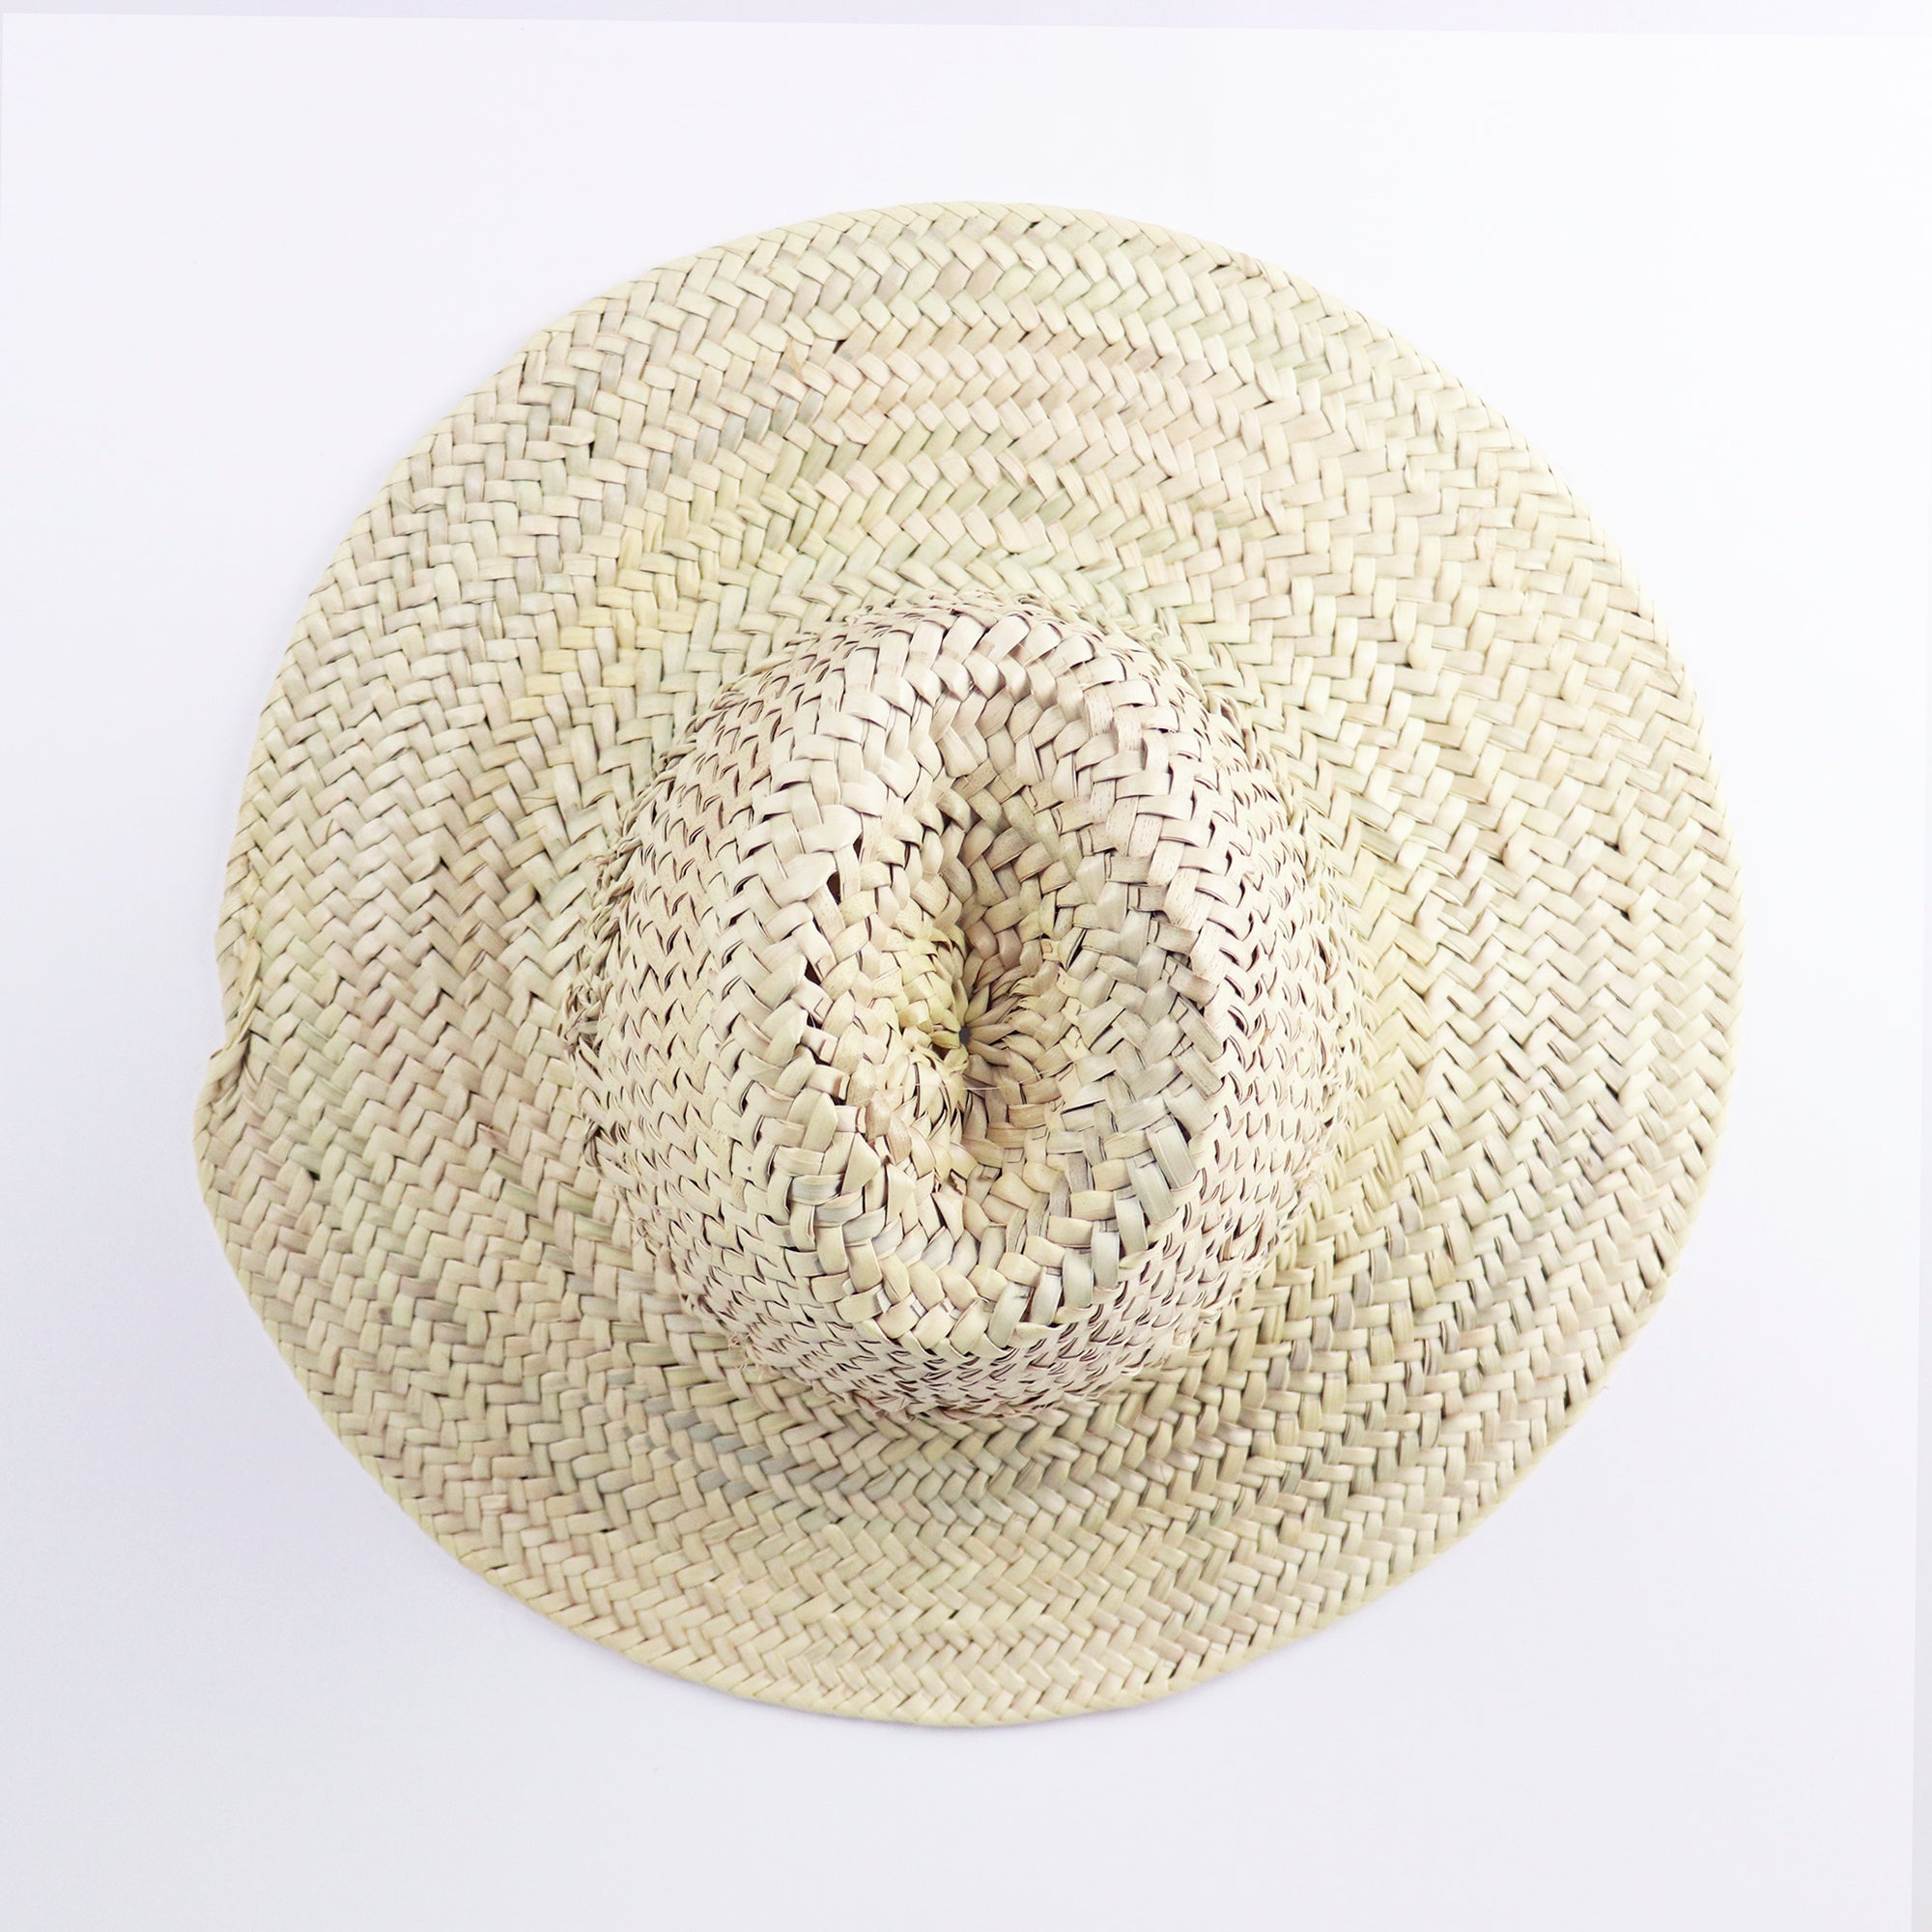 Arthur Decorative Straw Hat